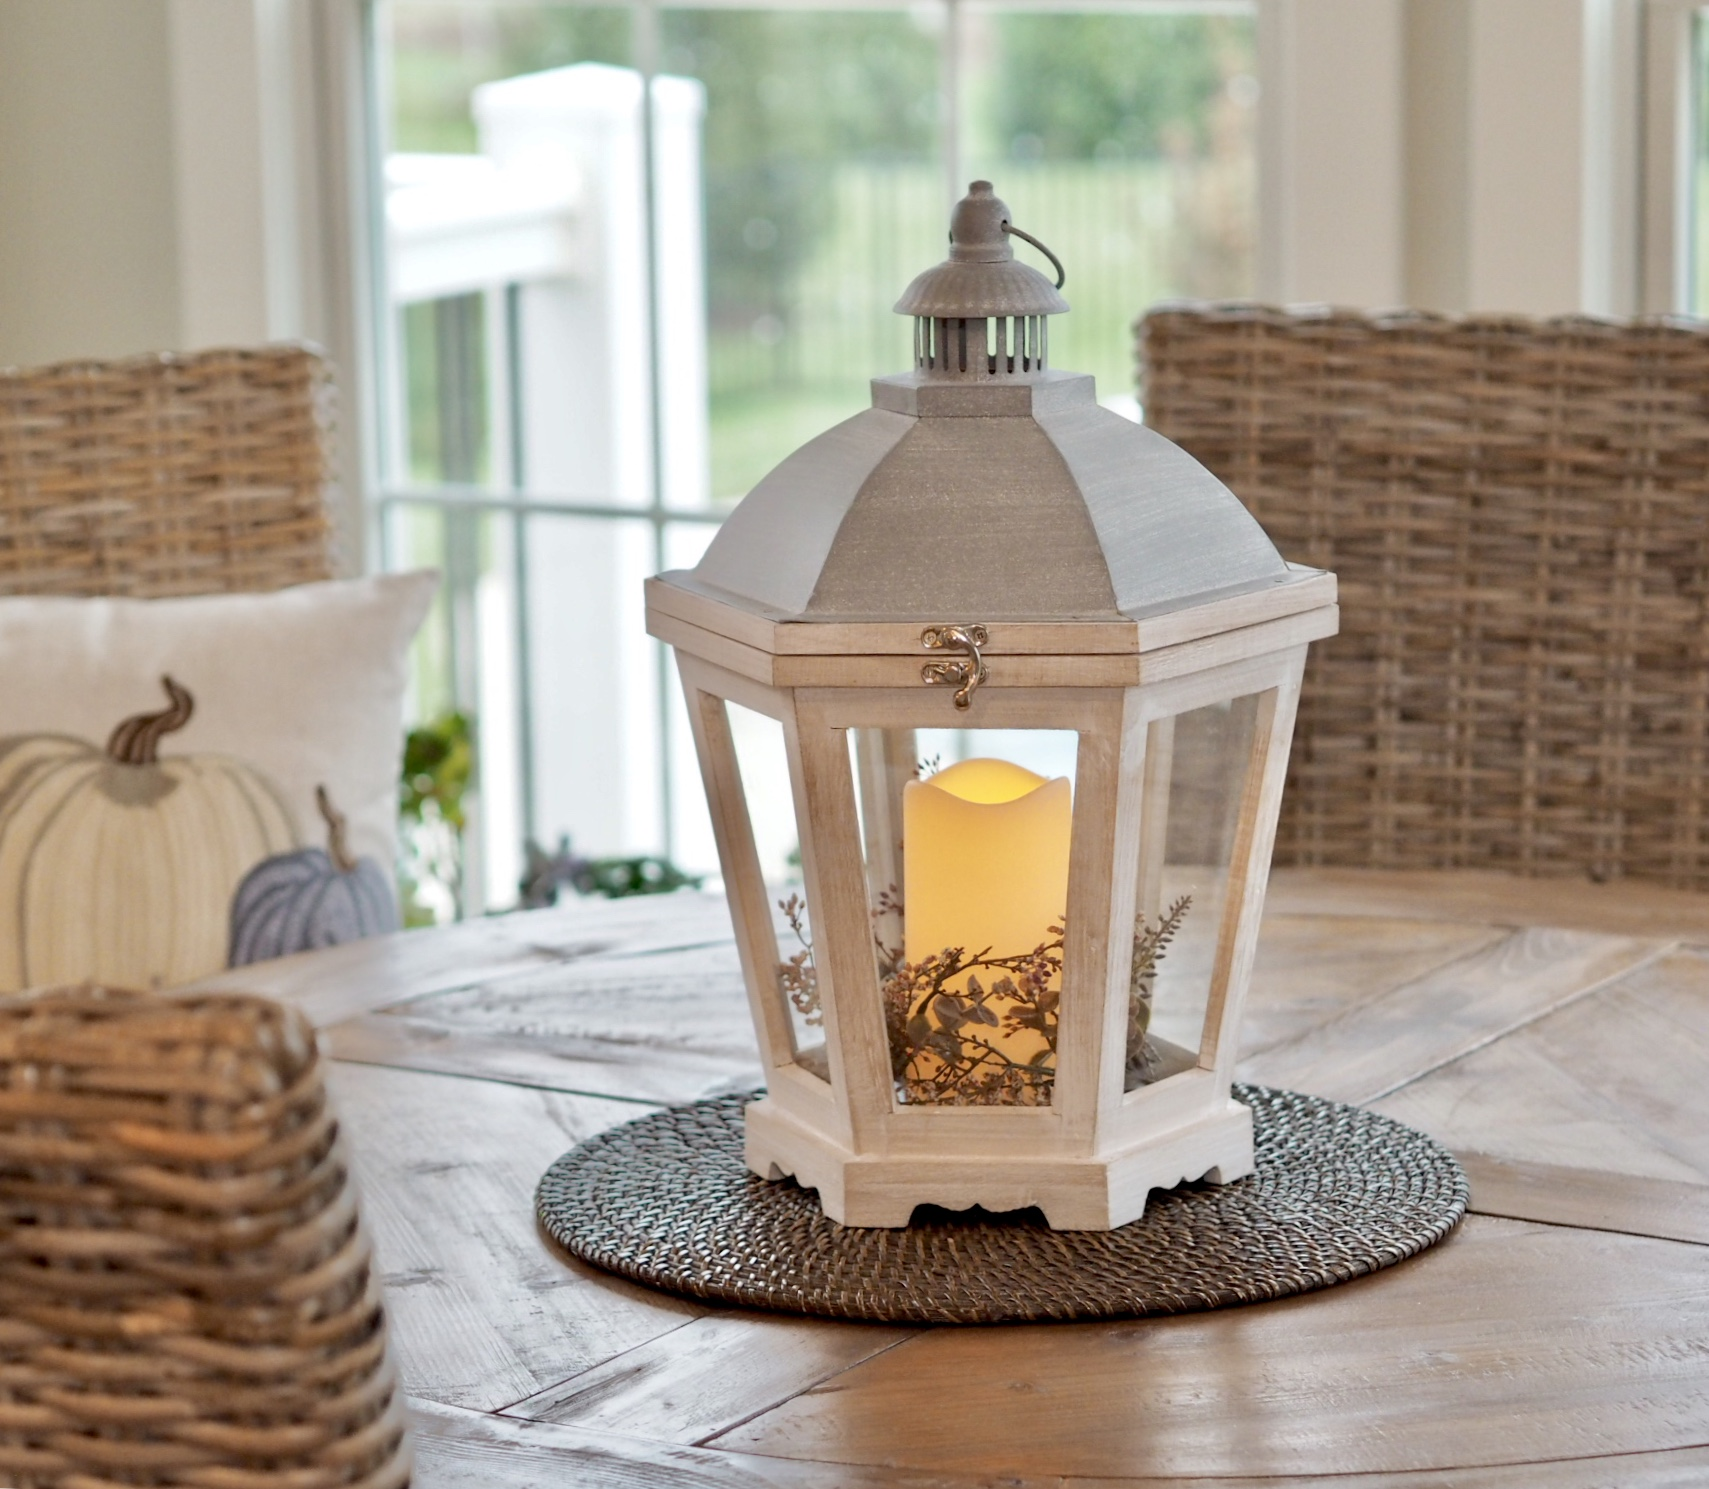 The cutest lantern with faux candle, the woven charger, the chairs and the pillow are from Pier 1 Imports.